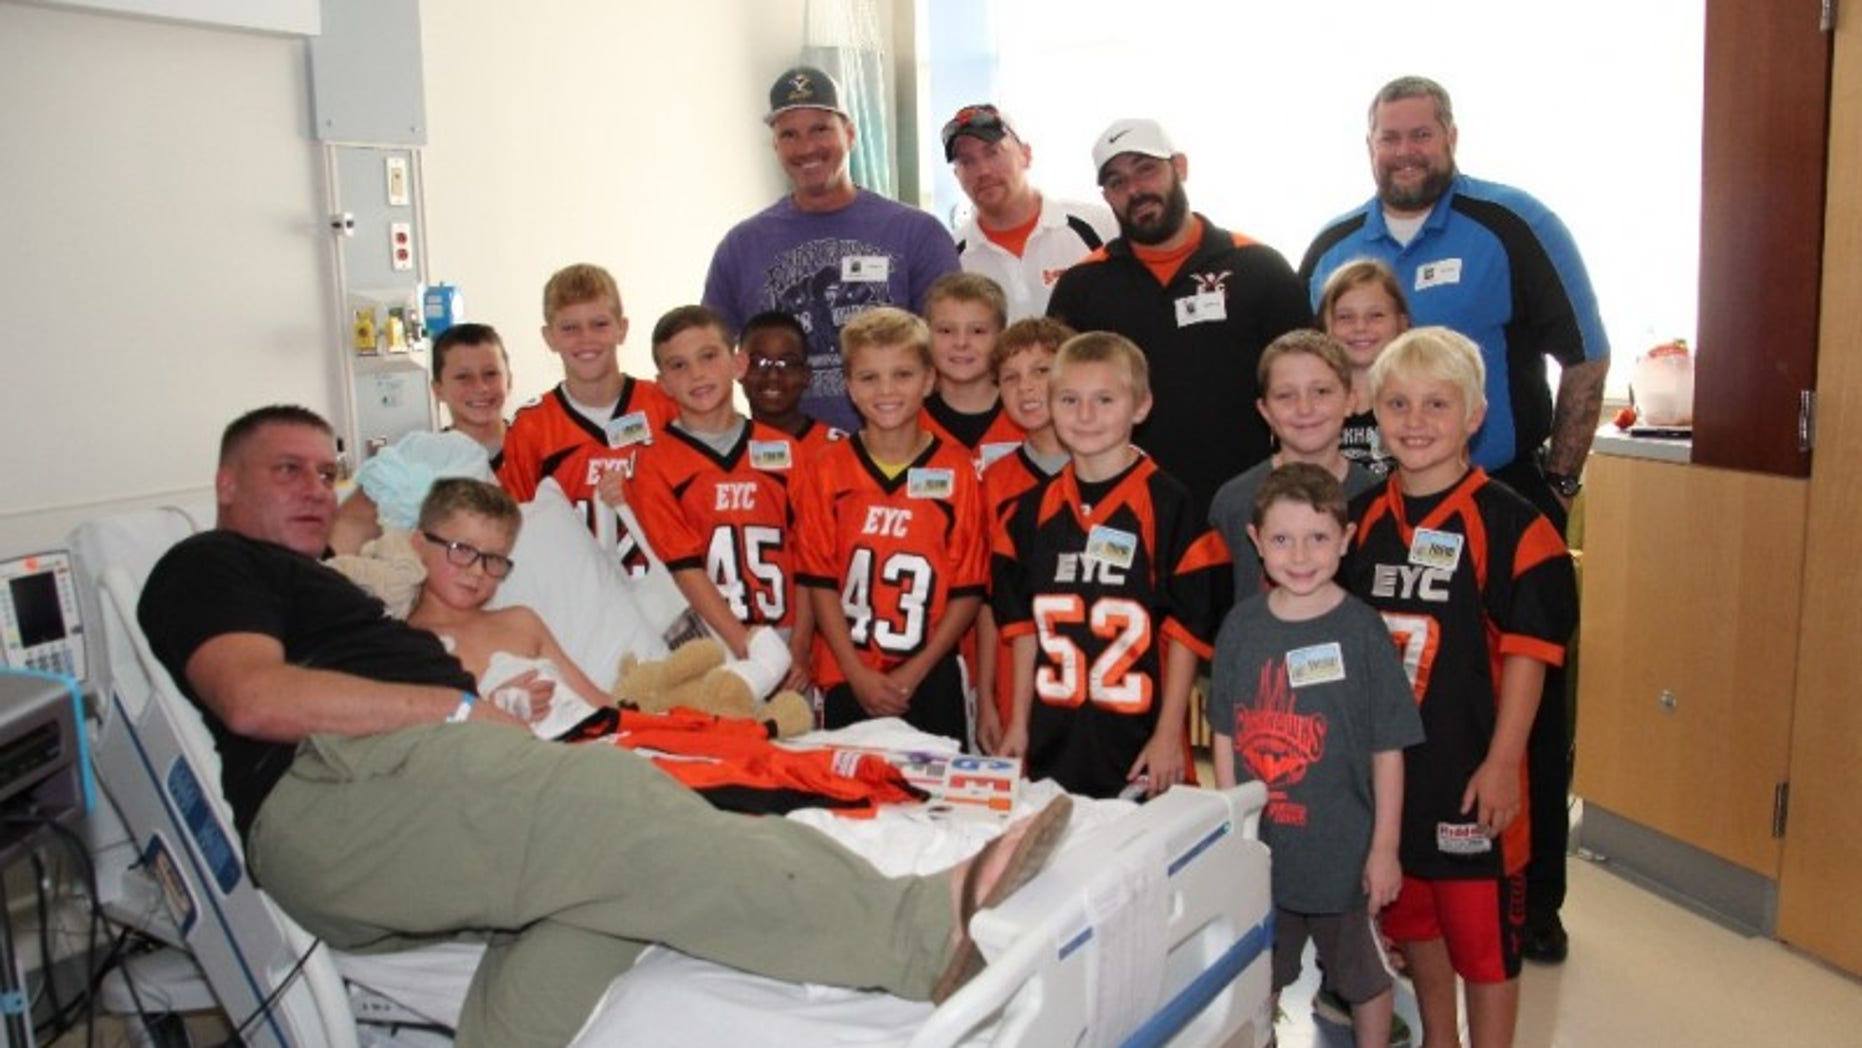 Ayden Zeigler-Kohler was diagnosed with DIPG after collapsing at football practice.